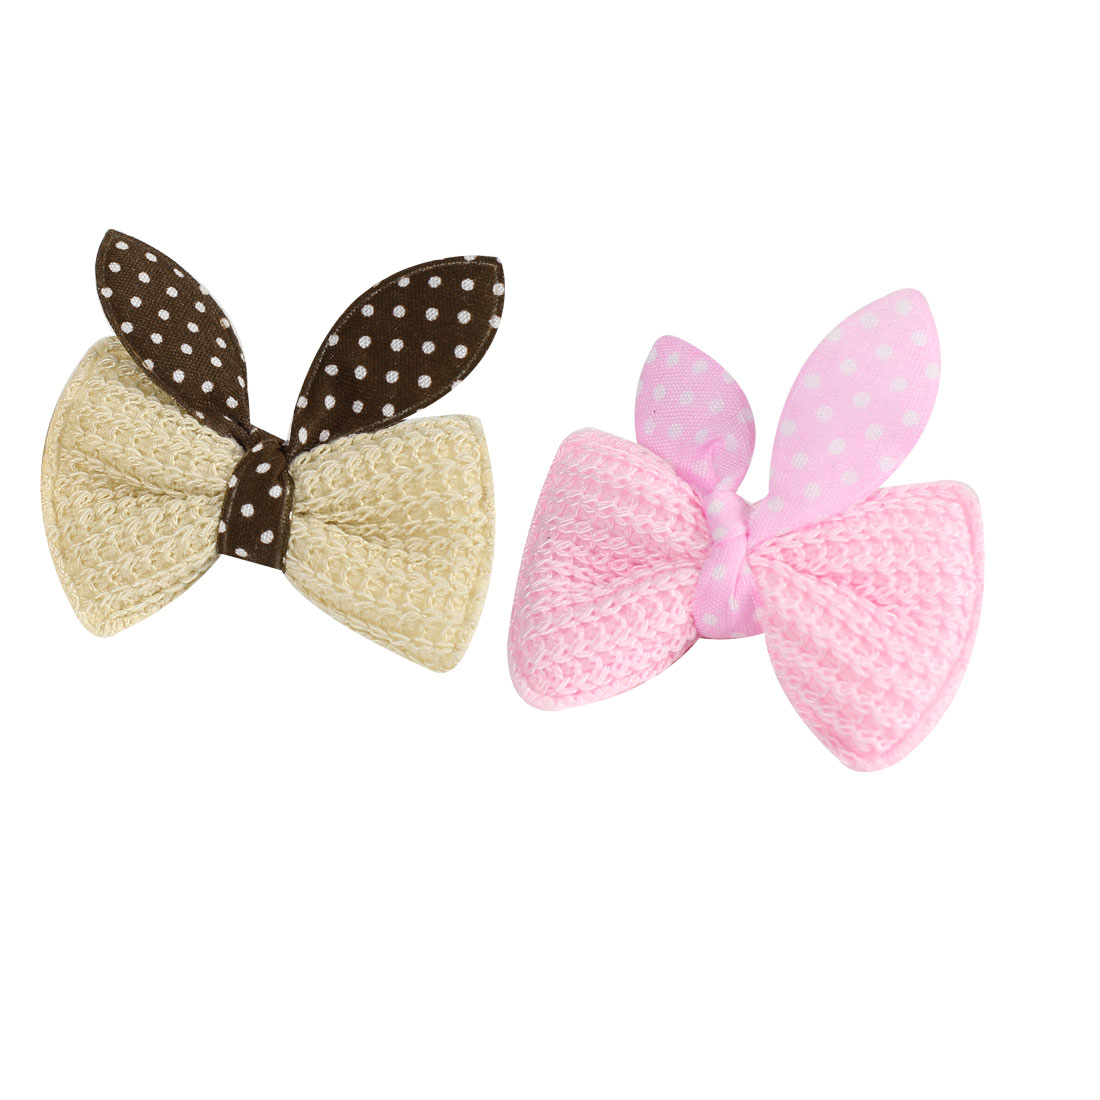 2 Pcs Light Pink Beige Bow Tie Mini Single Prong Hair Clip Barrettes for Kid